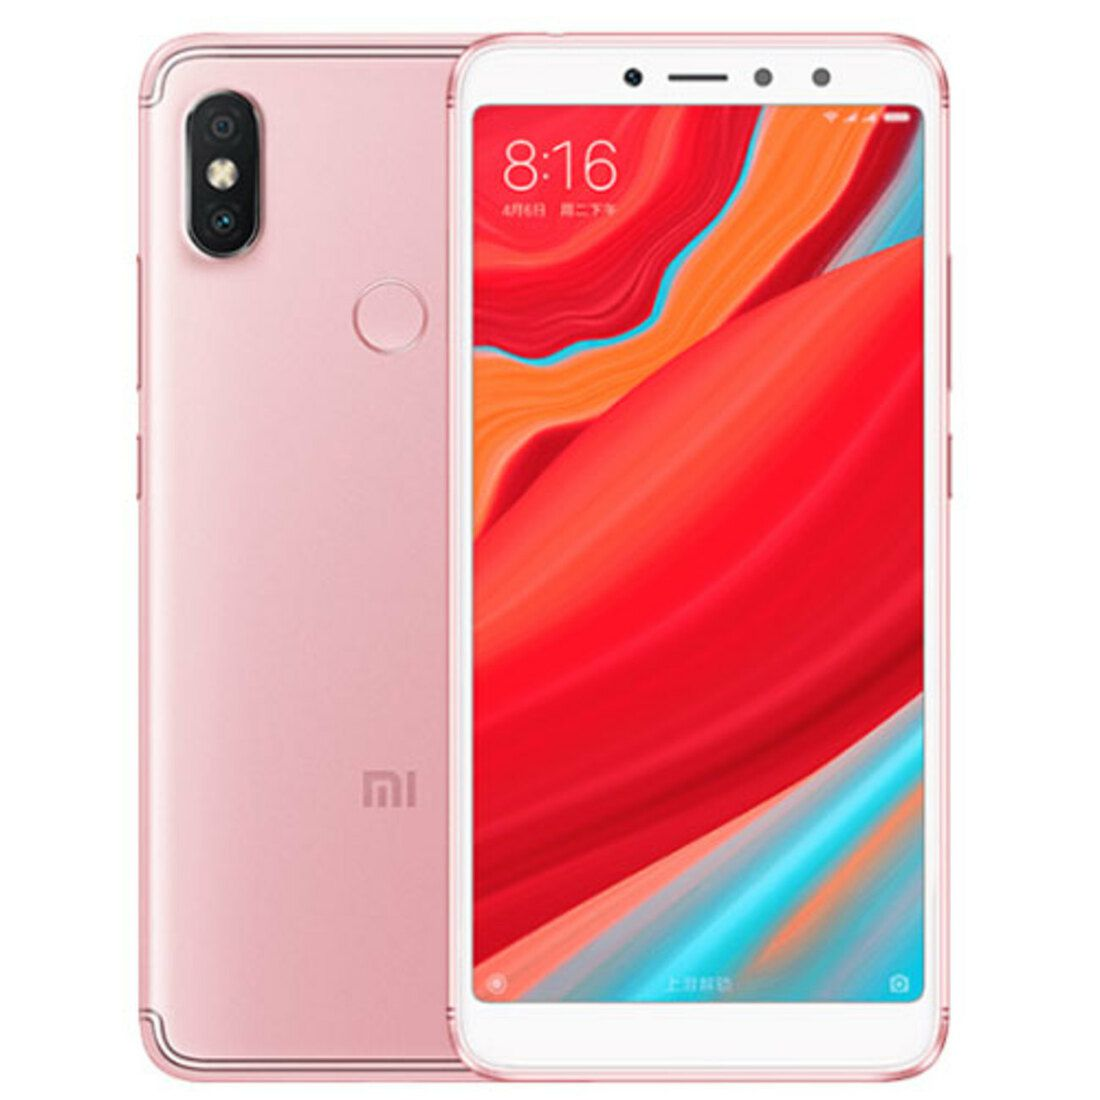 Smartphone Redmi S2 4GB Ram Tela 5.99 64GB Camera dupla 12+5MP - Rose